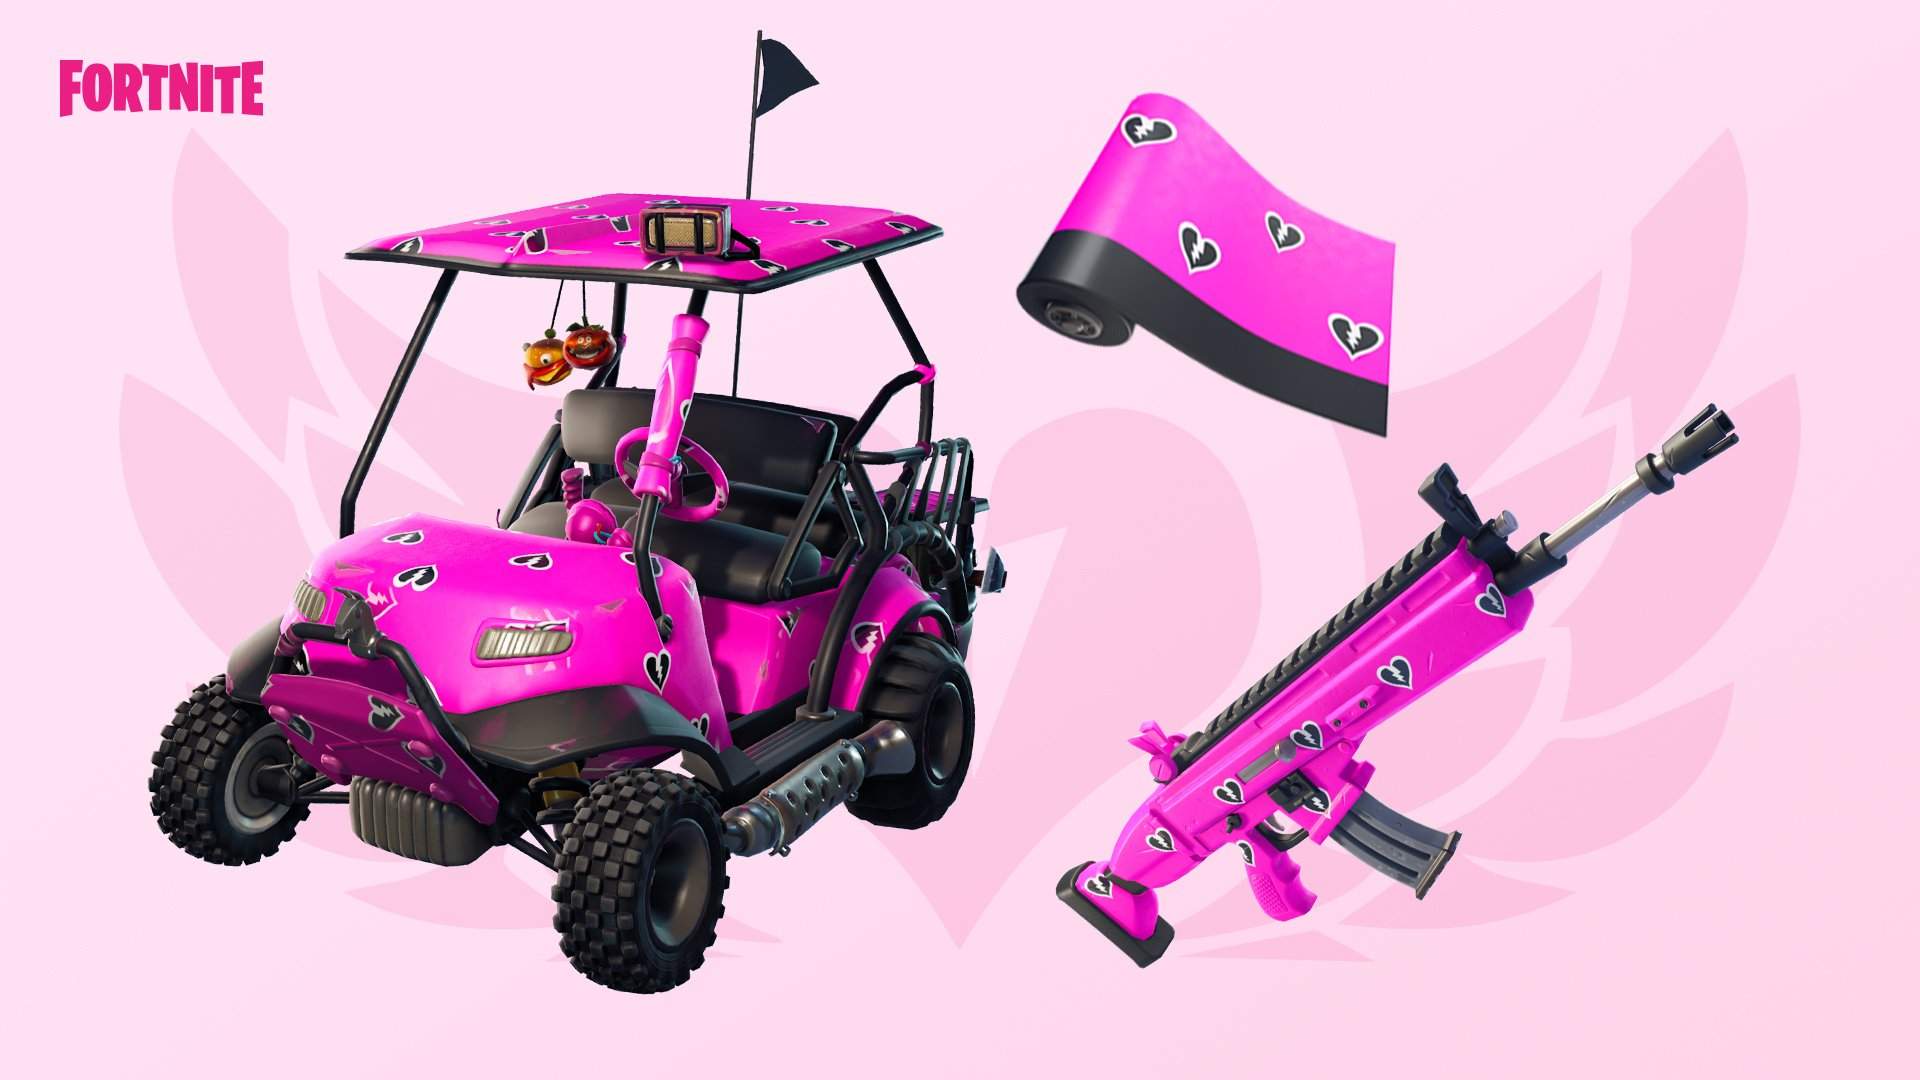 Share The Love Event Coming to Fortnite February 8